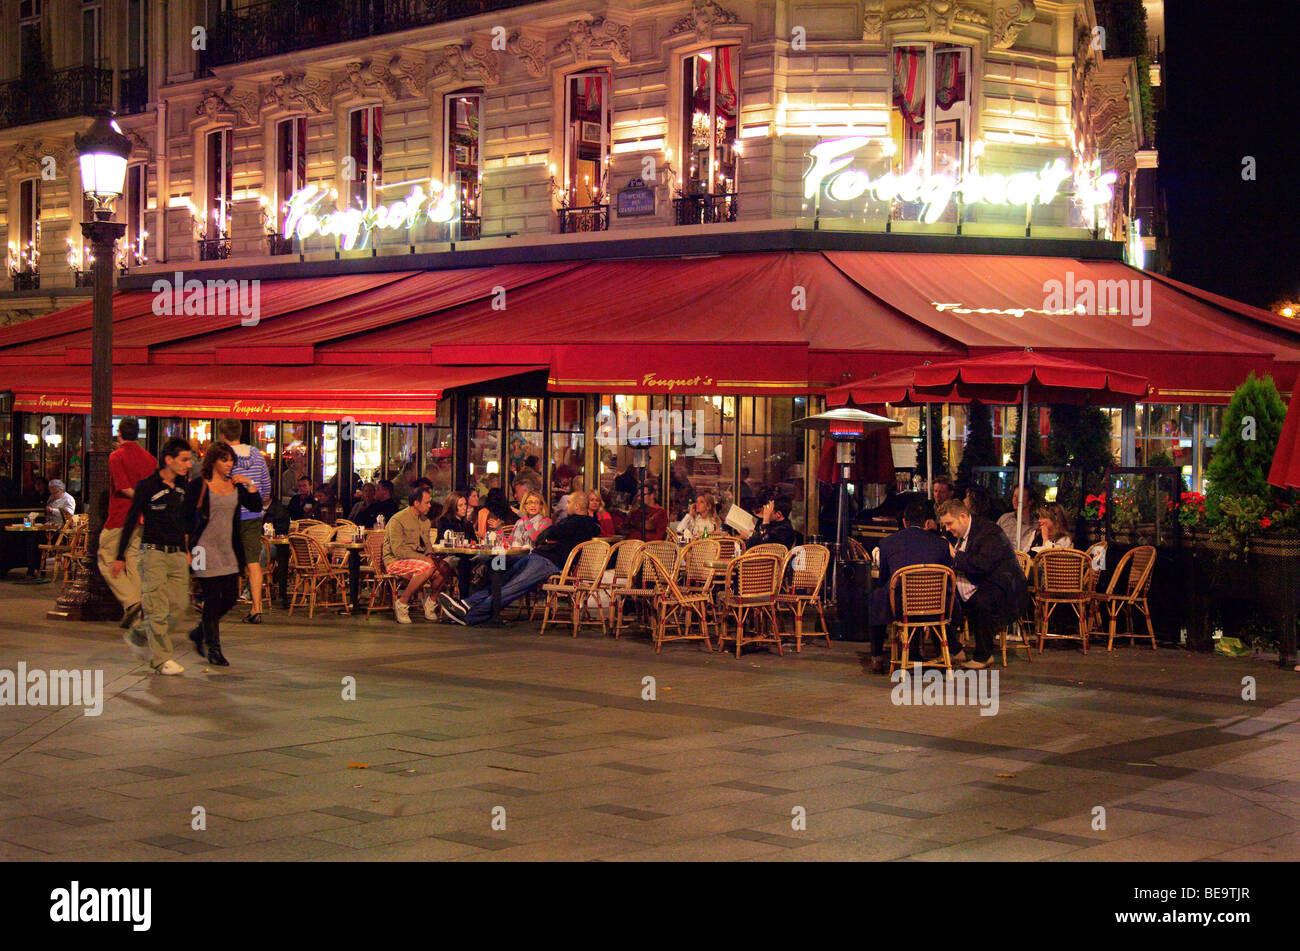 Champs Elysees Cafes Restaurants